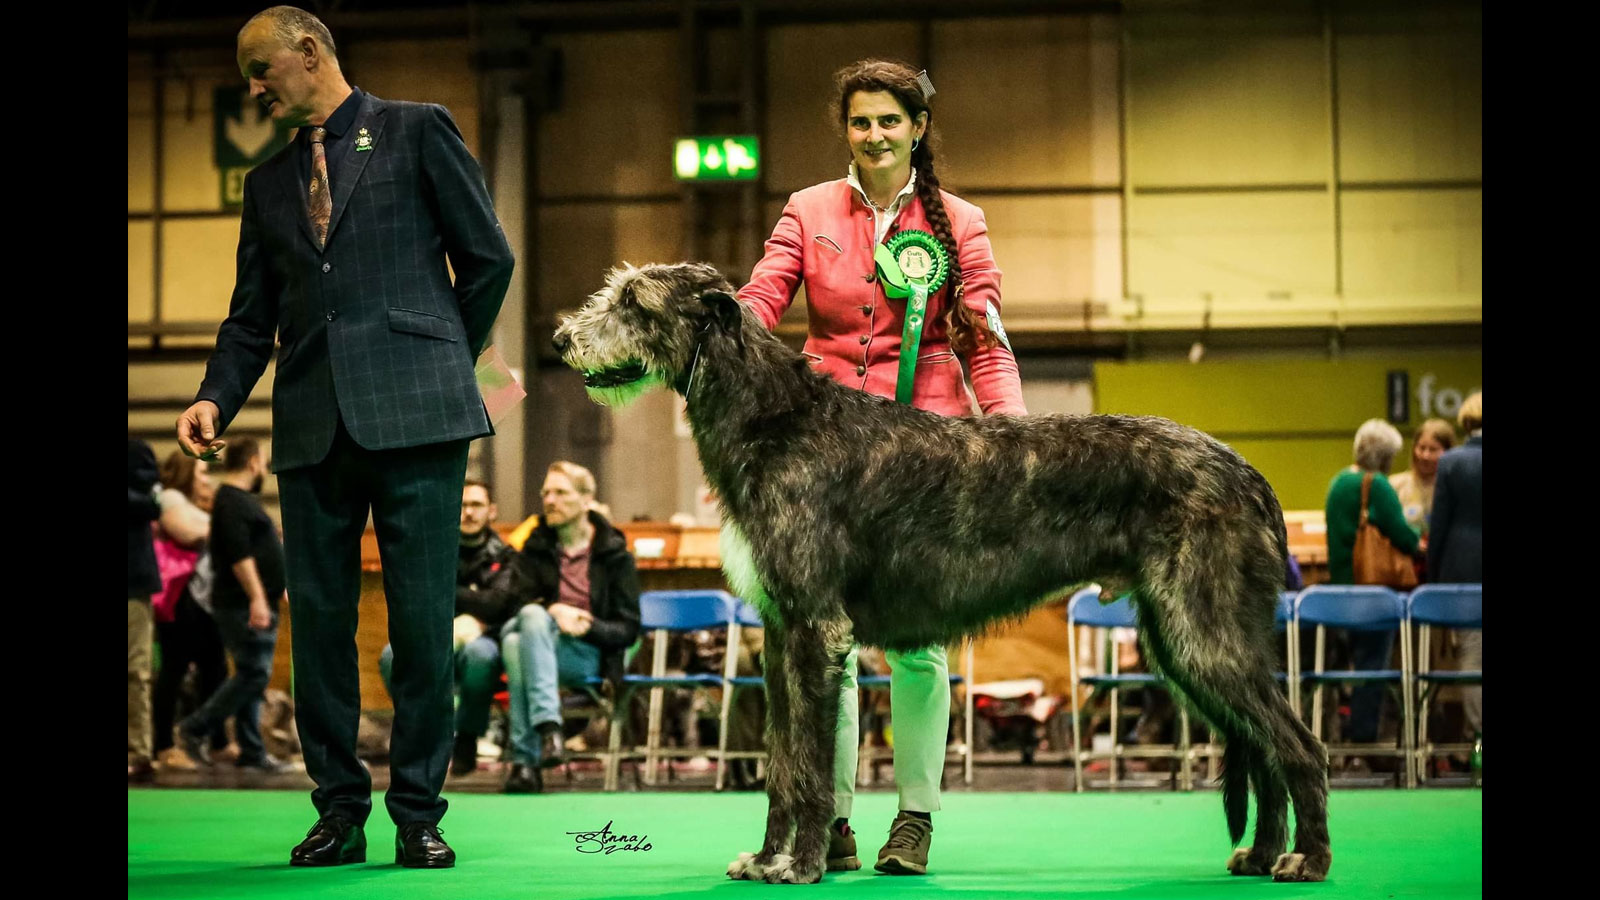 Pendragon dBP – BOB BOG3 at Crufts 2019